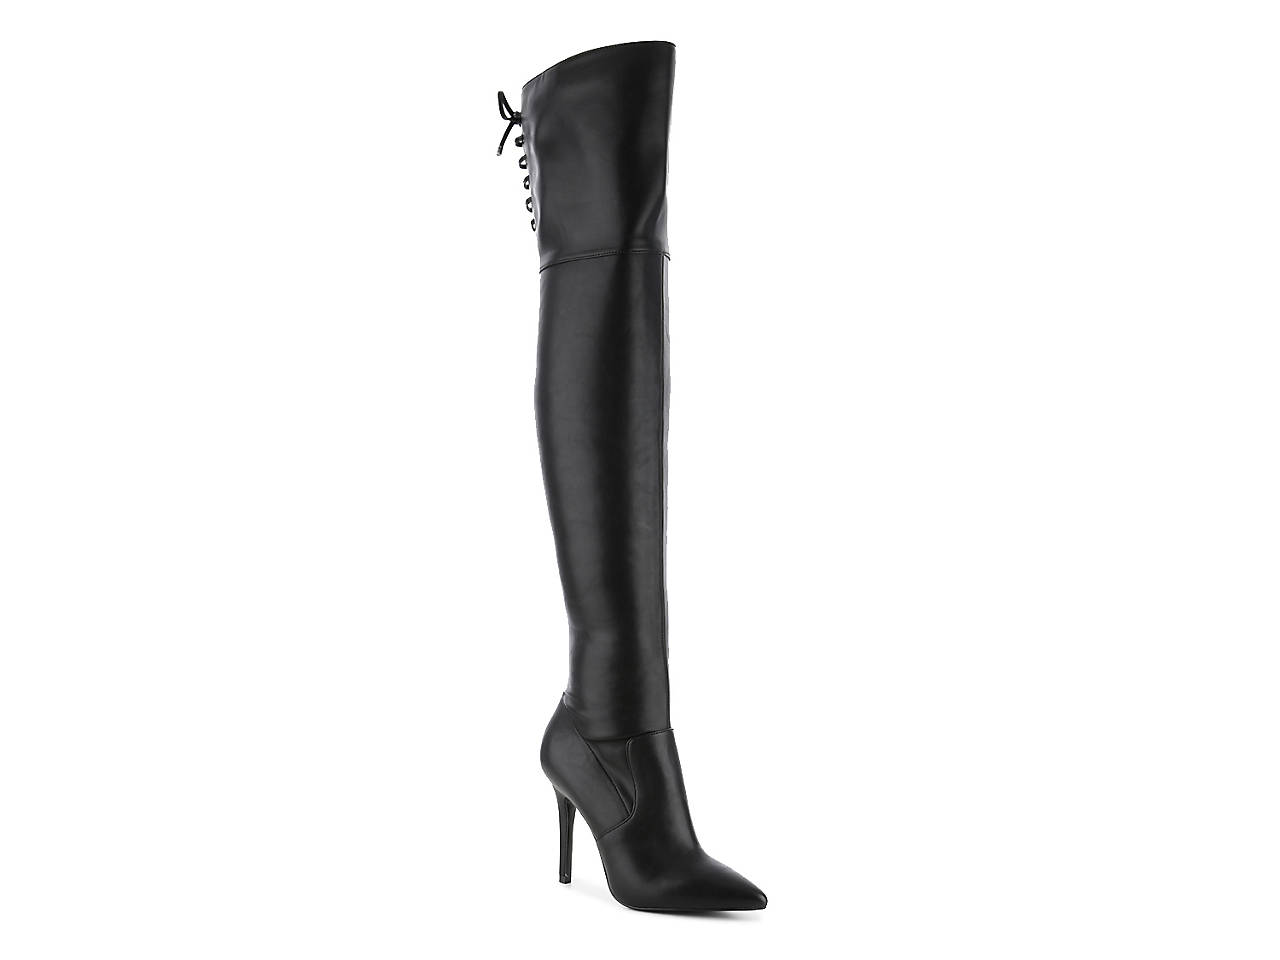 8eeabab4b16 Aldo Praduro Over The Knee Boot Women s Shoes